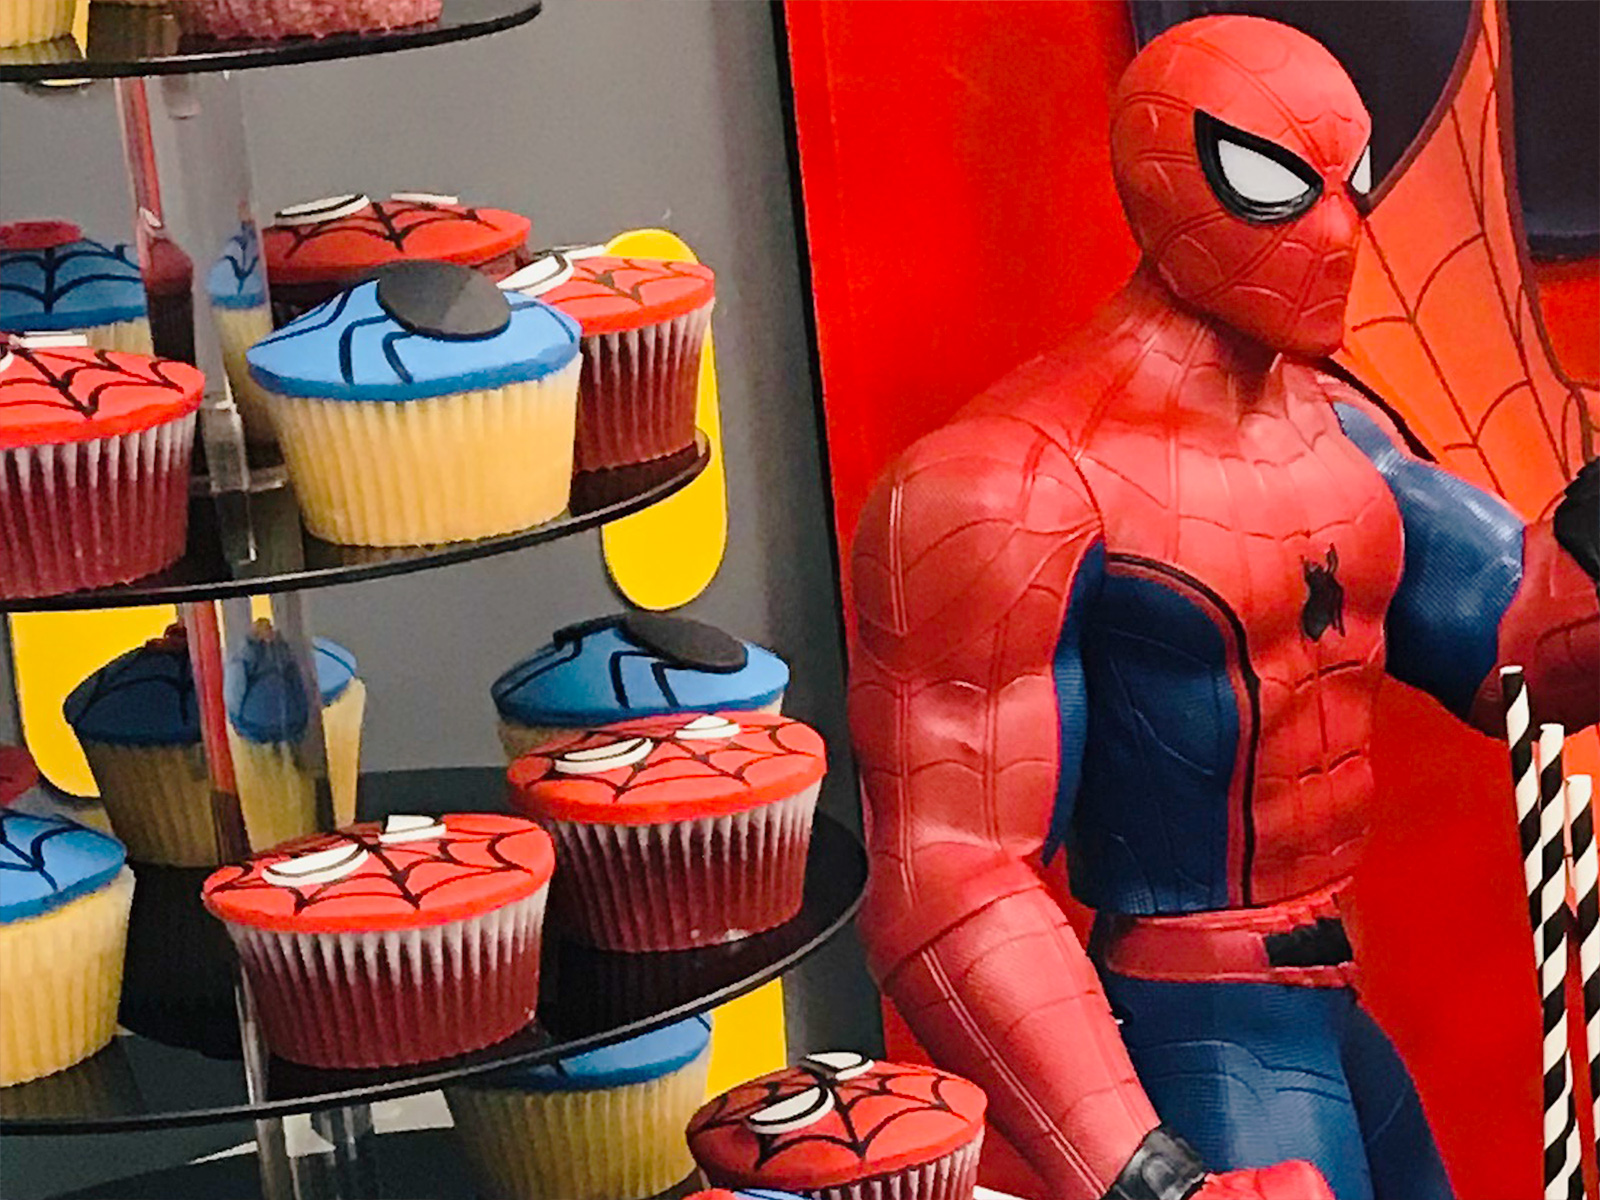 Spiderman themed birthday